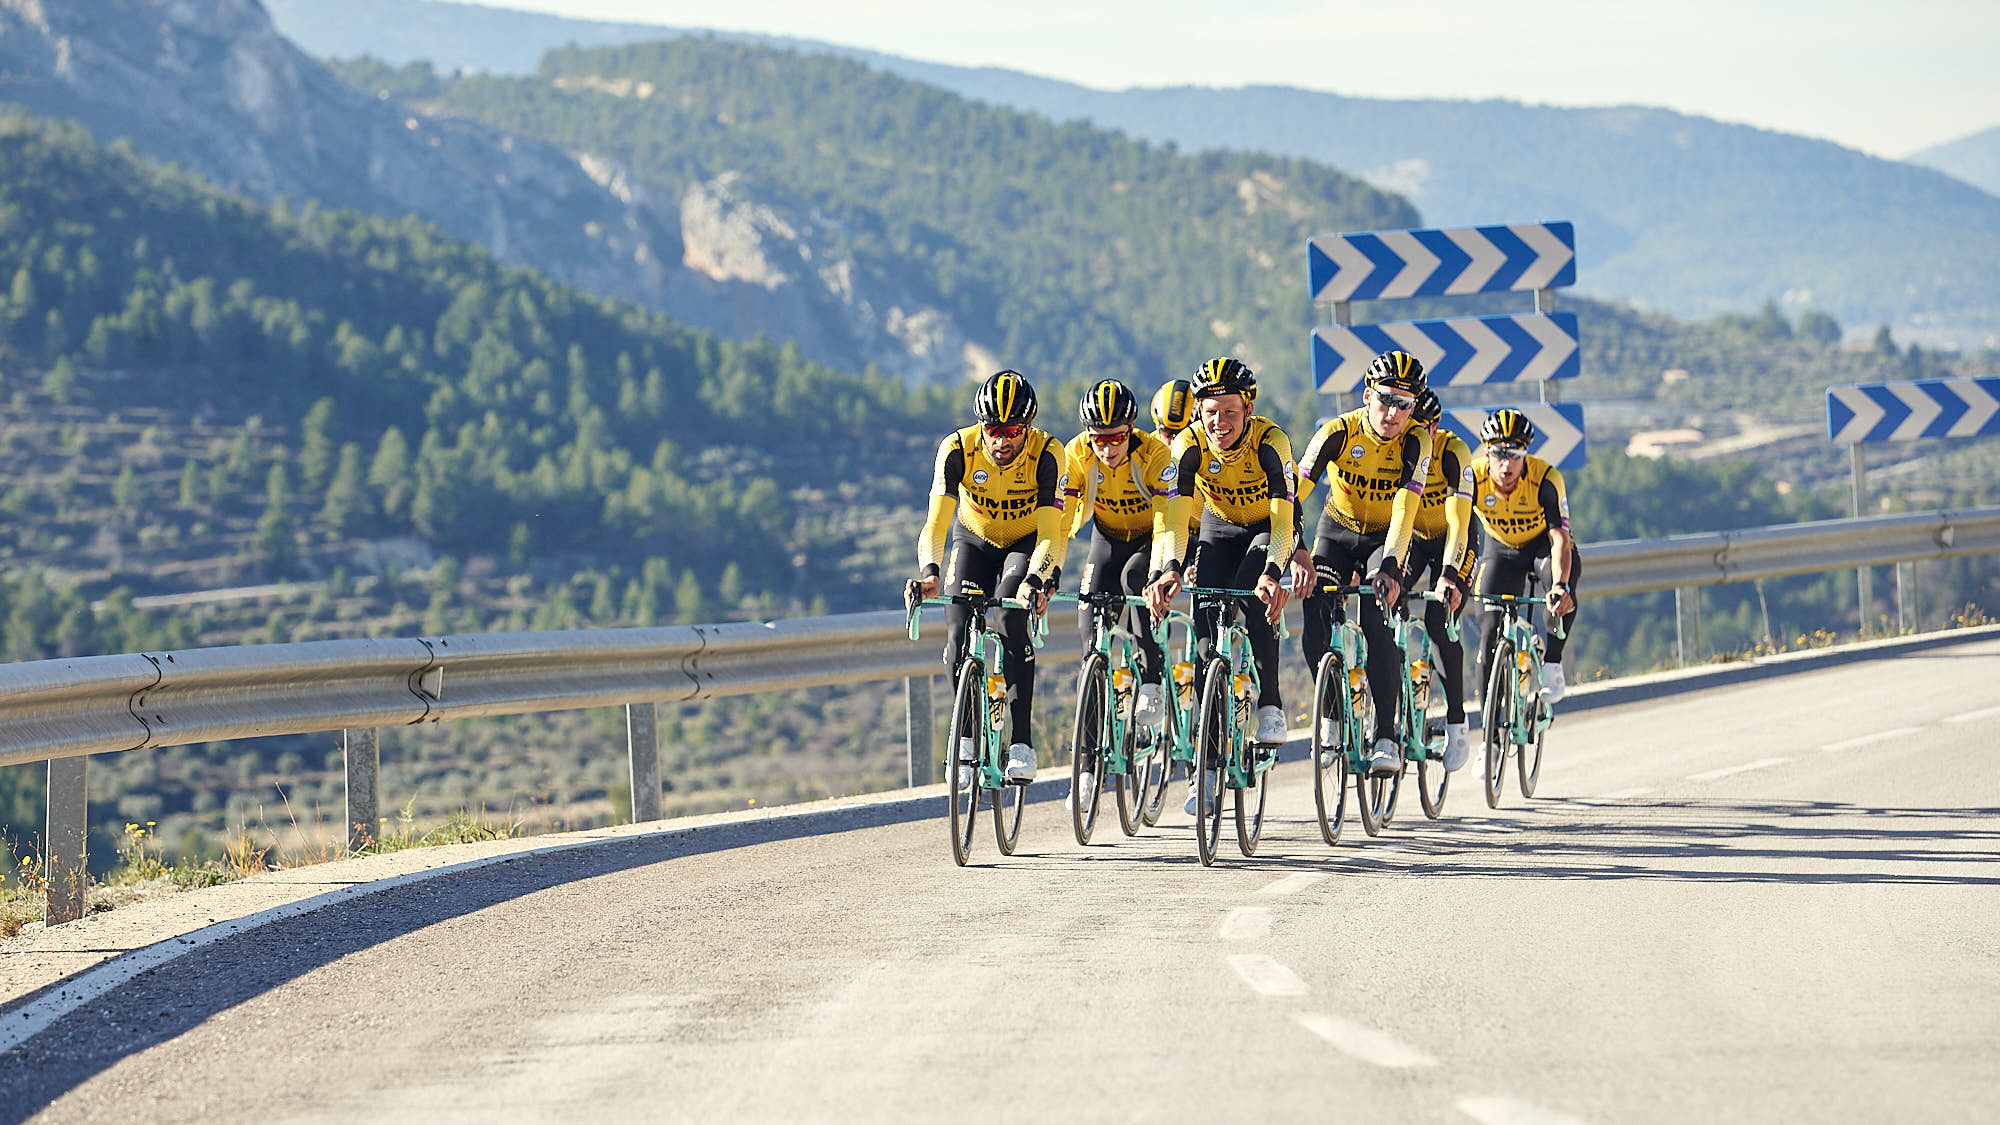 Group of Jumbo-Visma cyclists during training near Alicante